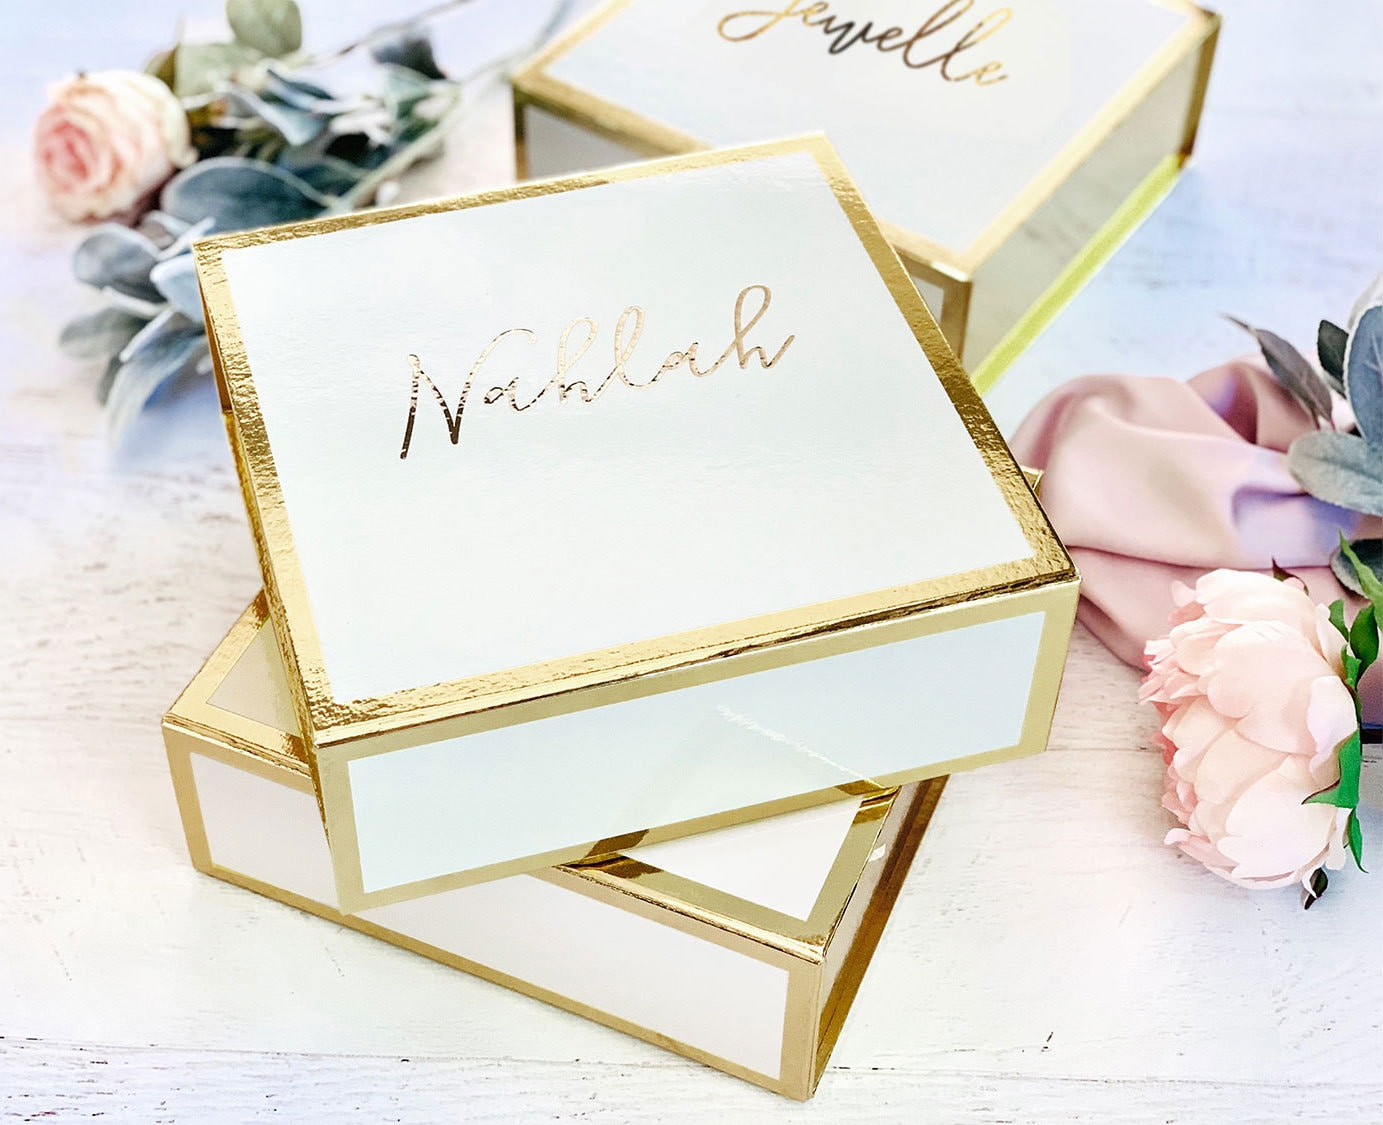 bridesmaid gift box bridesmaid boxes personalized gift box etsy. Black Bedroom Furniture Sets. Home Design Ideas